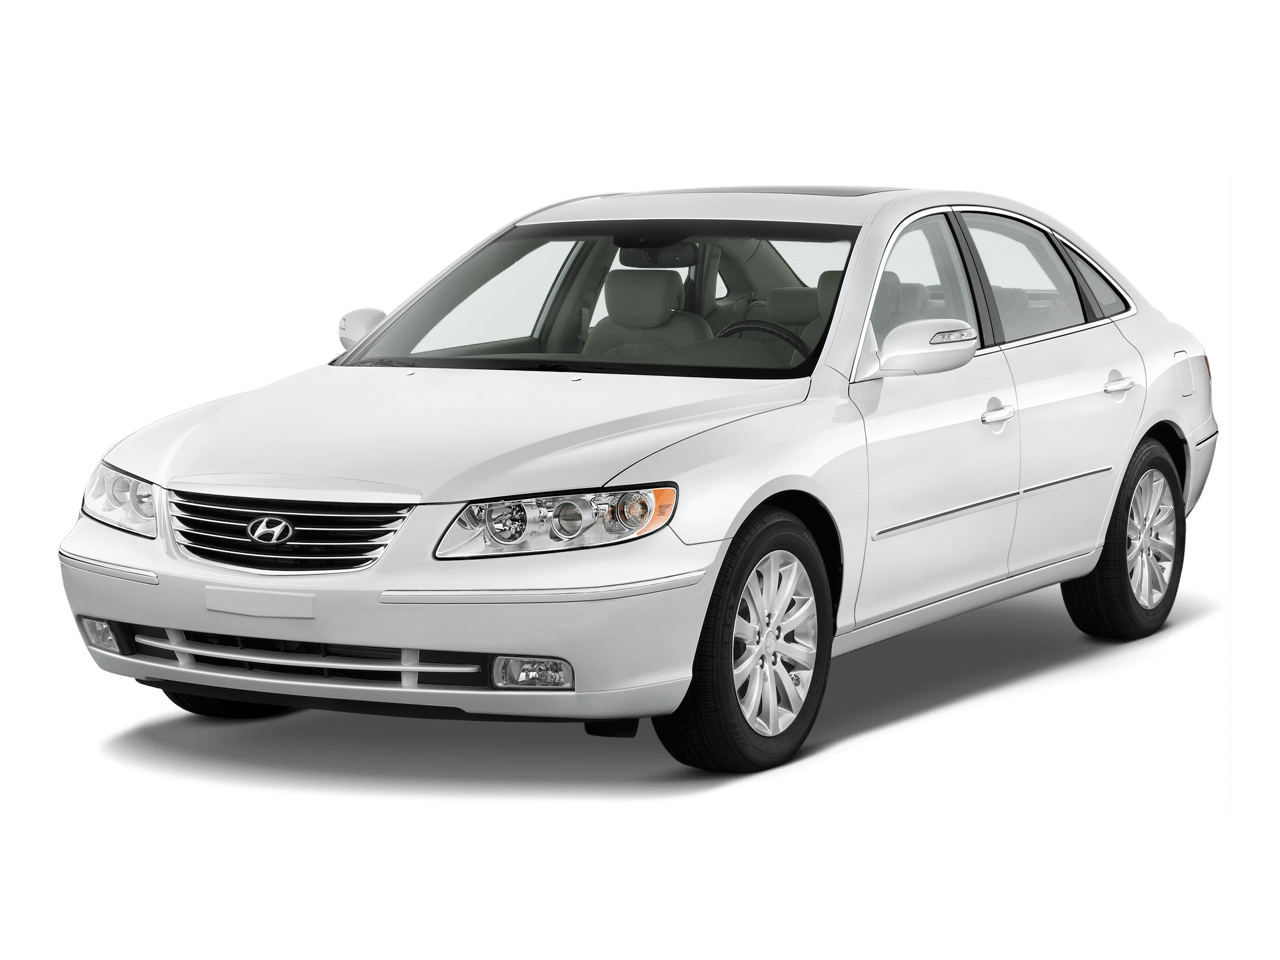 Sonata Wallpaper Car 2006 2009 Hyundai Azera Recalled For Potential Air Bag